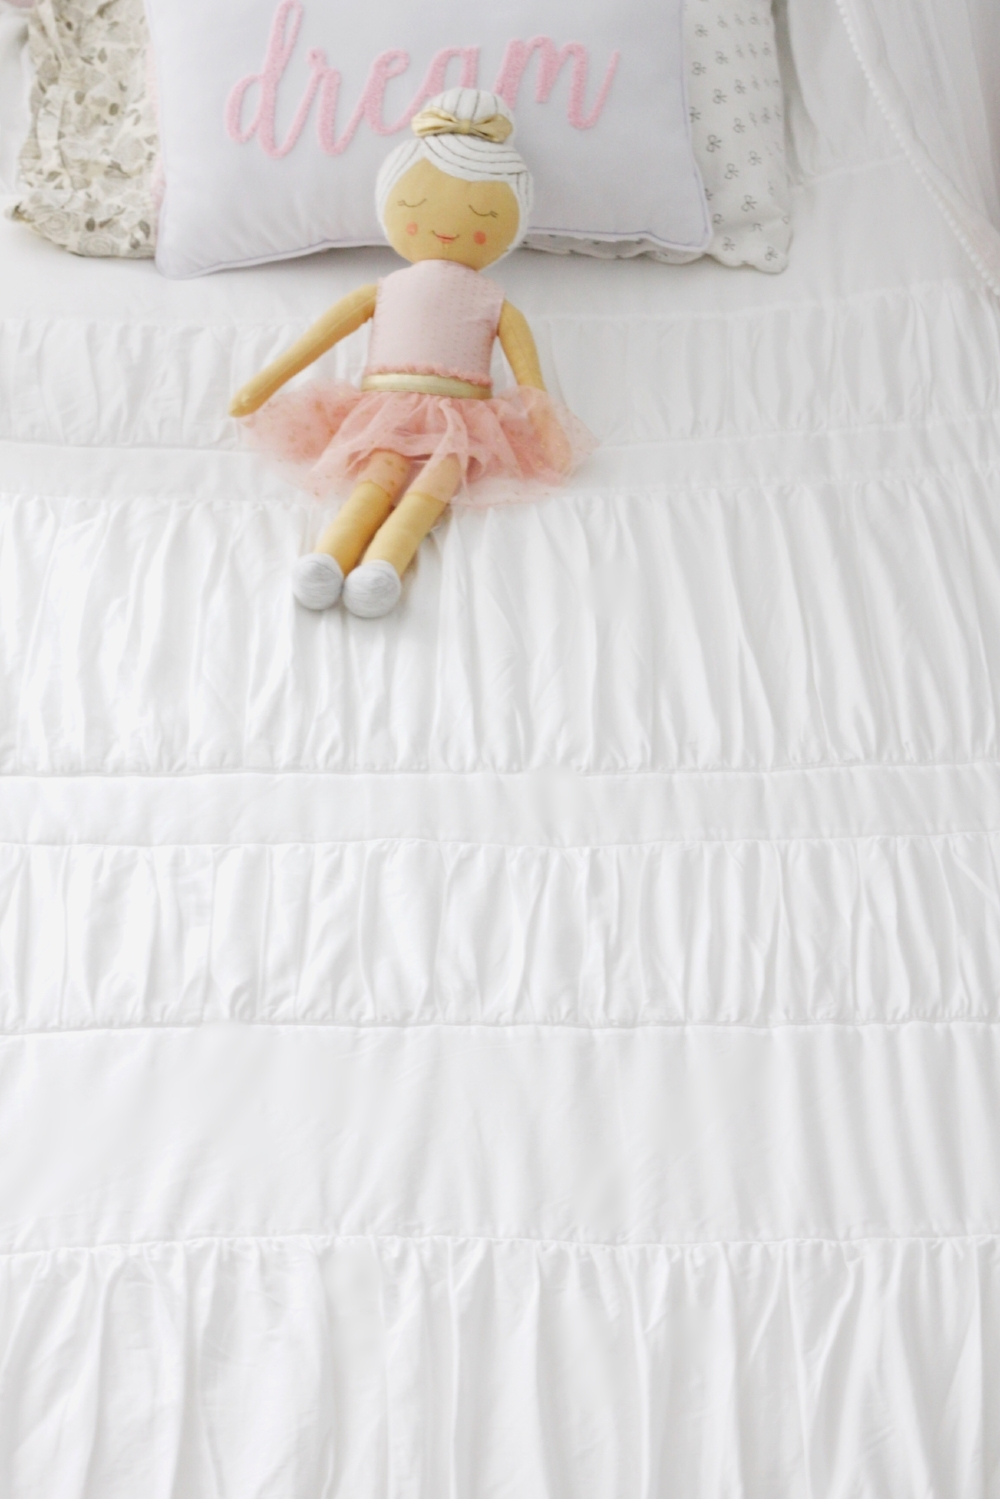 Want an easy way to get your kids to make their own beds? Give Beddy's bedding a try, their unique all in one zip up bedding makes making the bed a breeze!